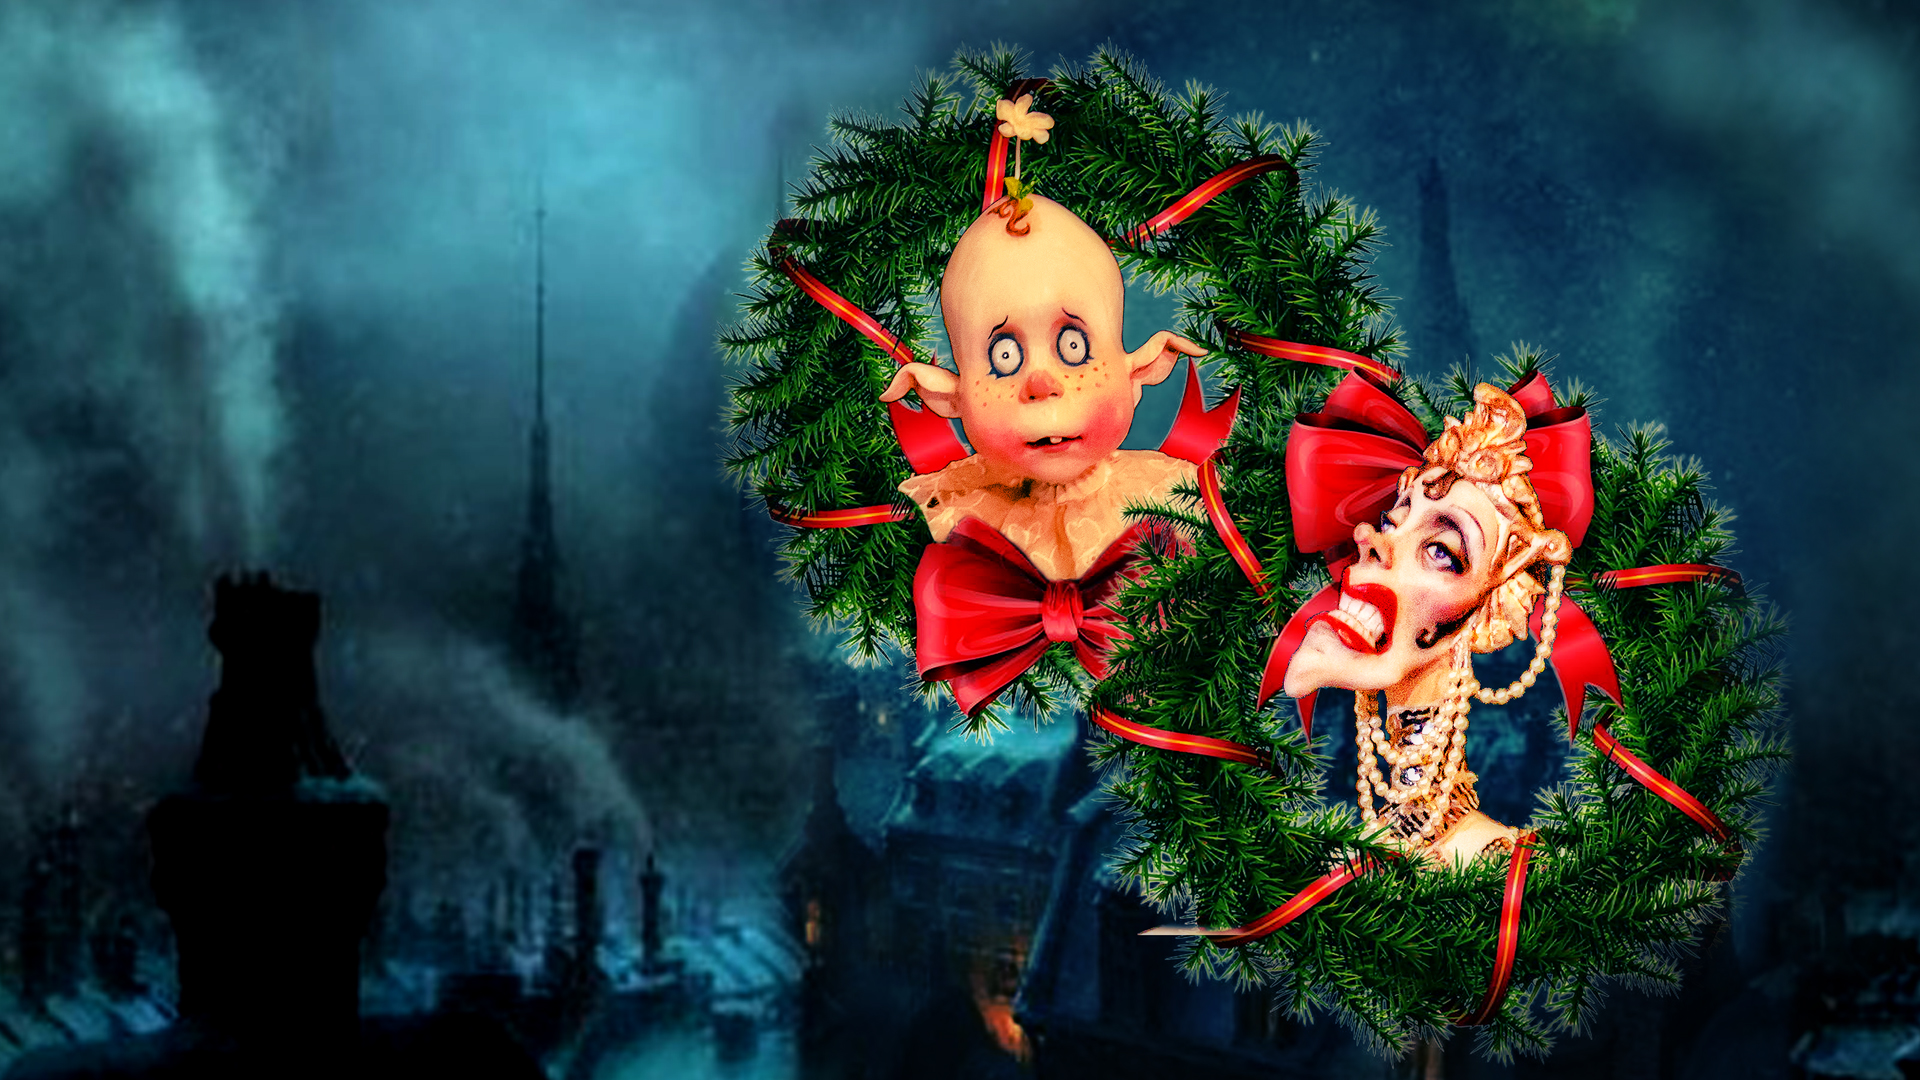 Little Dickens Visual with marionnette faces in wreaths